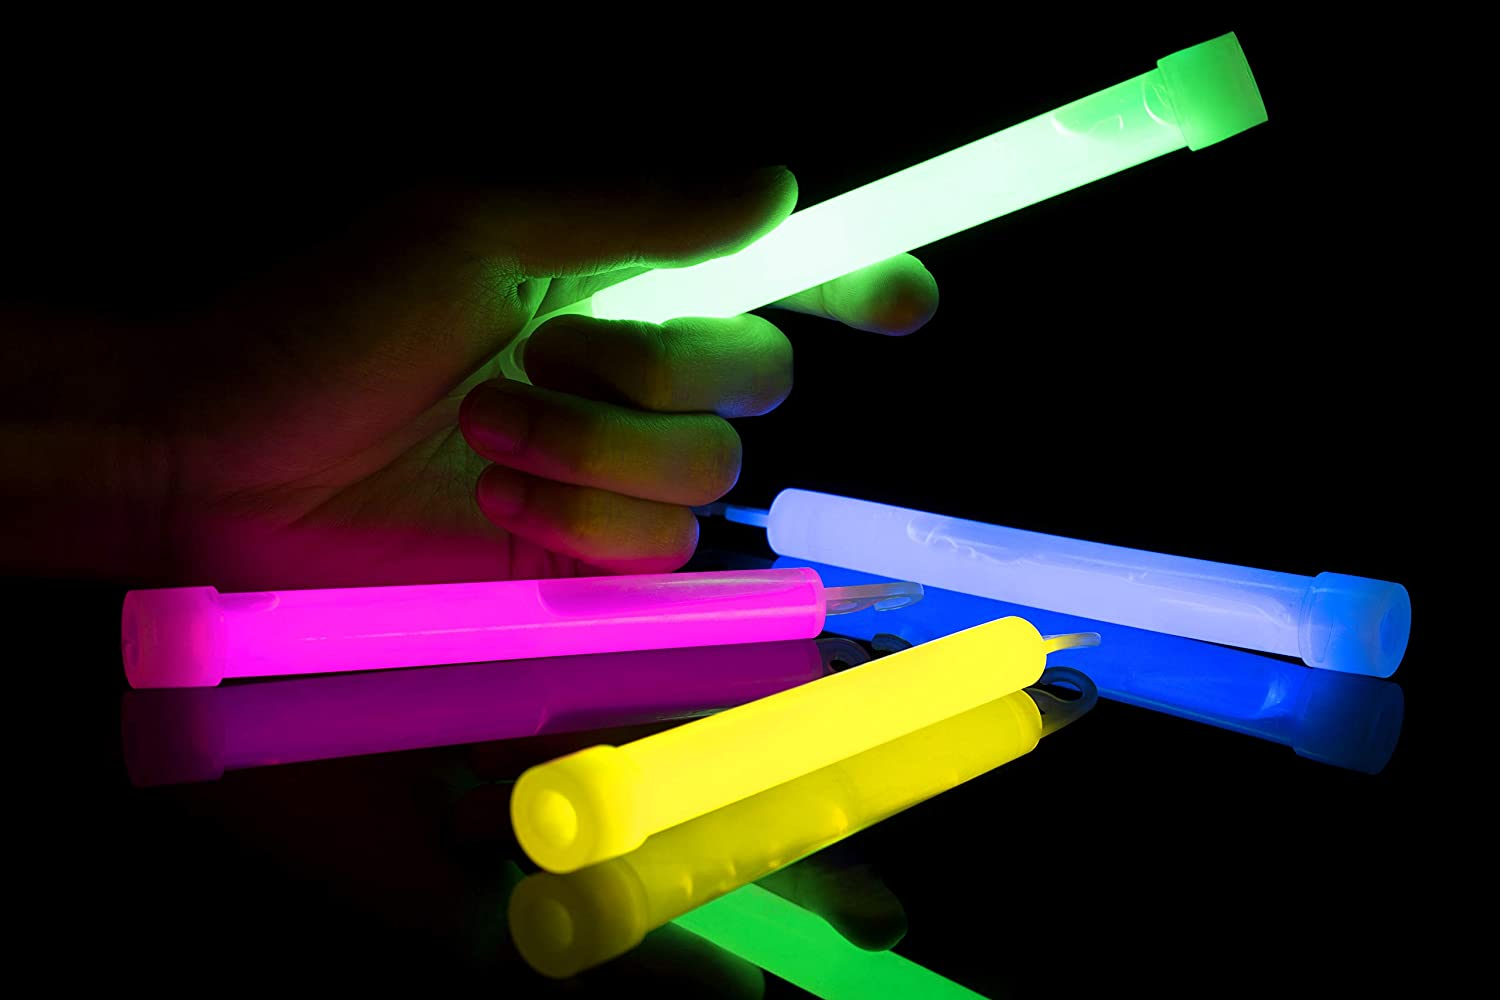 Glowsticks Bulk Pack Of 24 Industrial Grade Long Lasting Emergency 8 Light Sticks Glow In The Dark Light Sticks Premium Glow Sticks Bright Light Glows Up To 12 Hours